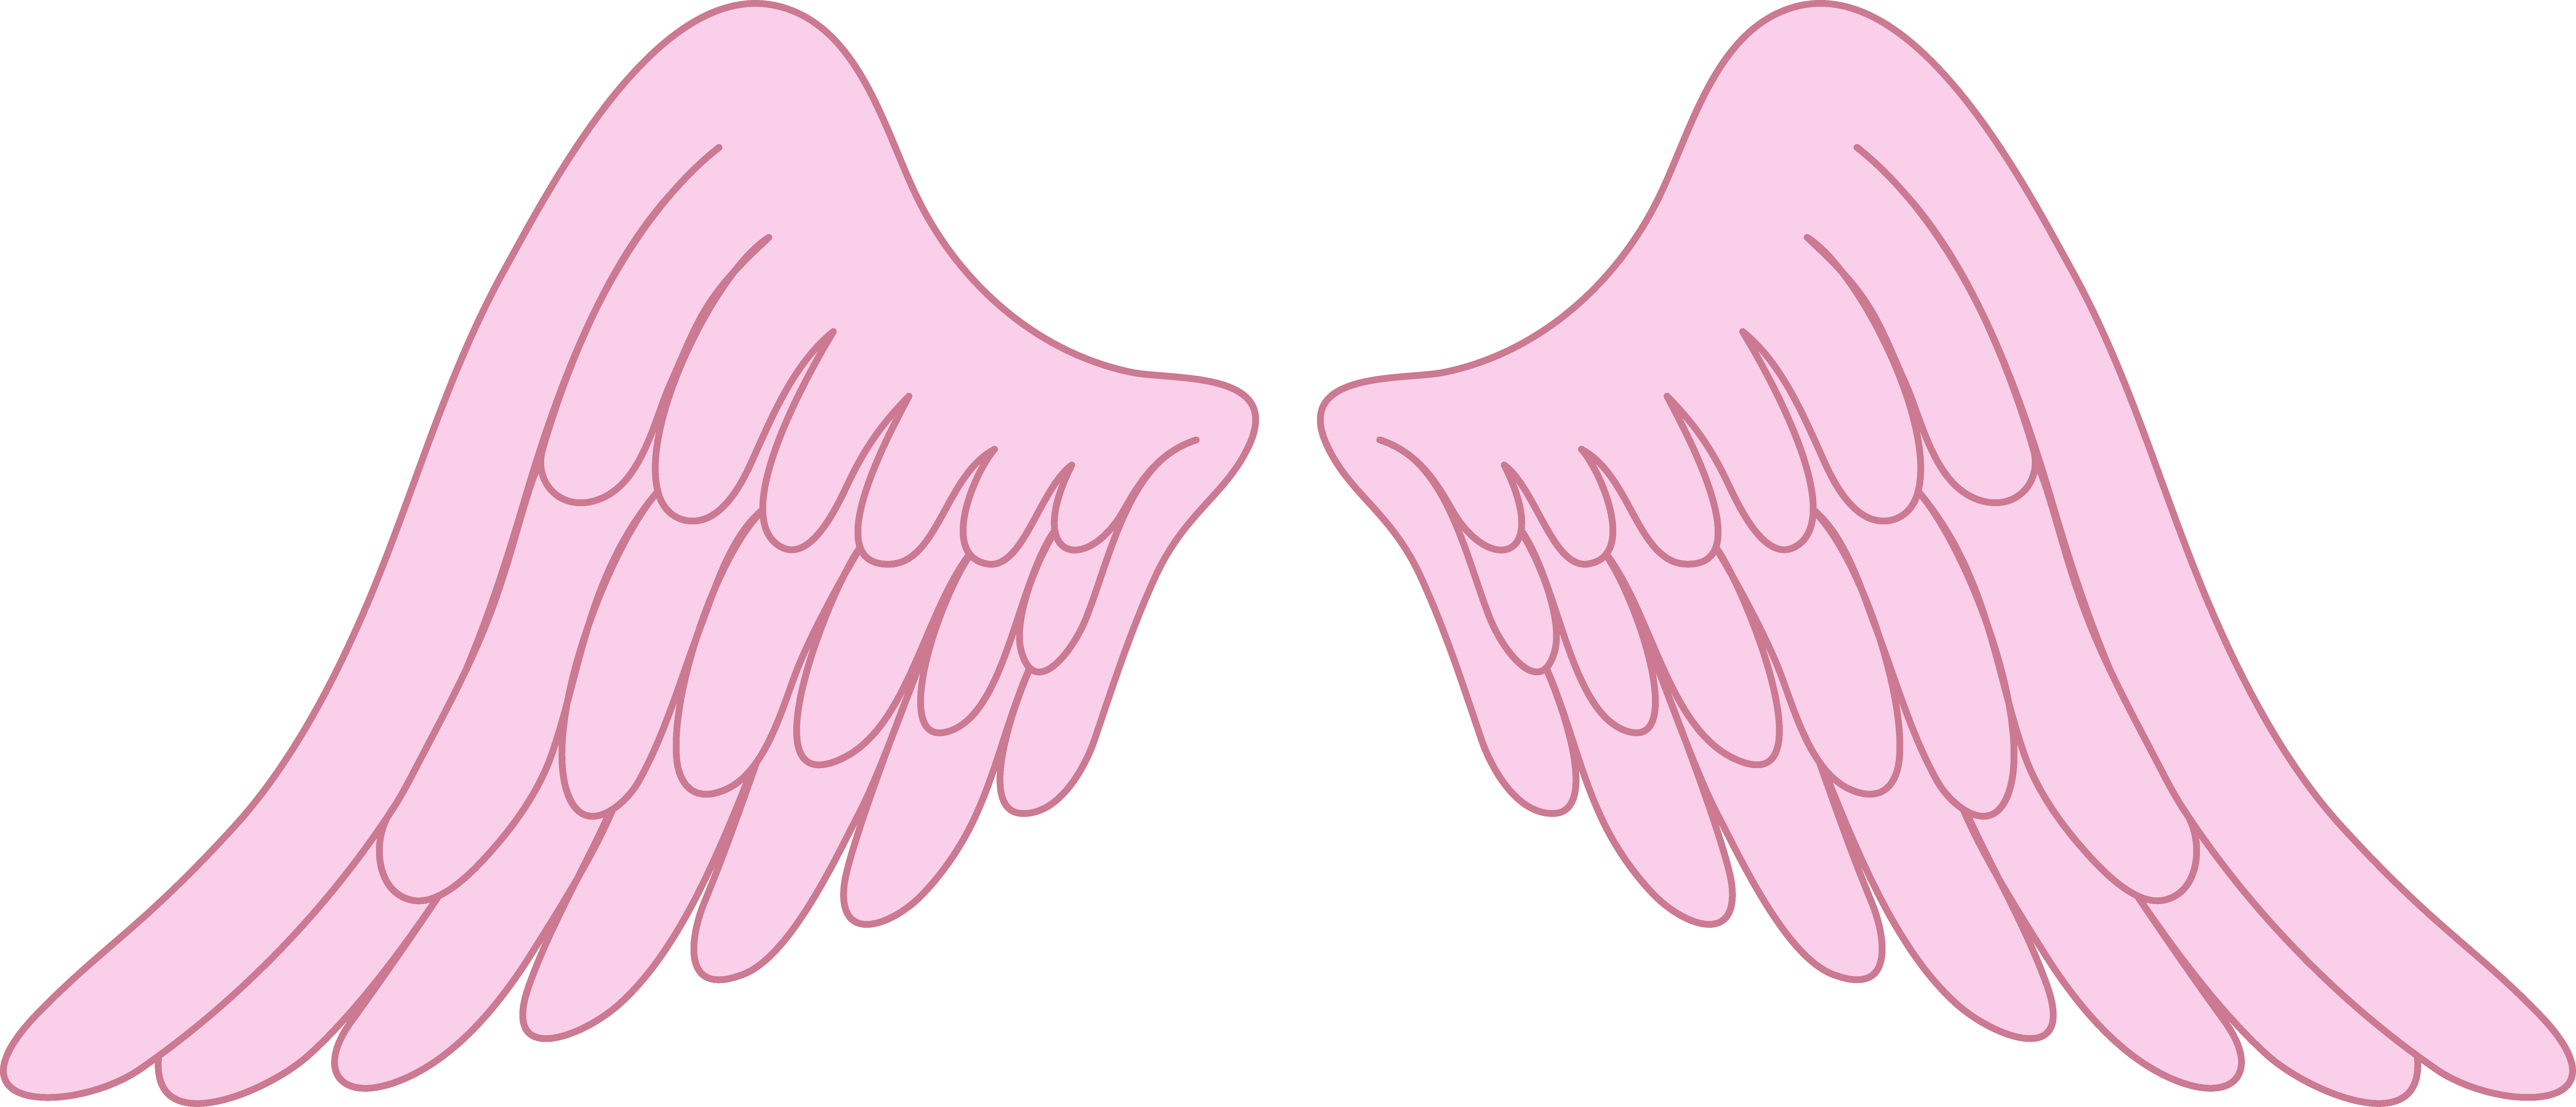 Baby wings clipart images jpg royalty free download Baby Angel Wings Clip Art | Angels in 2019 | Angel wings clip art ... jpg royalty free download